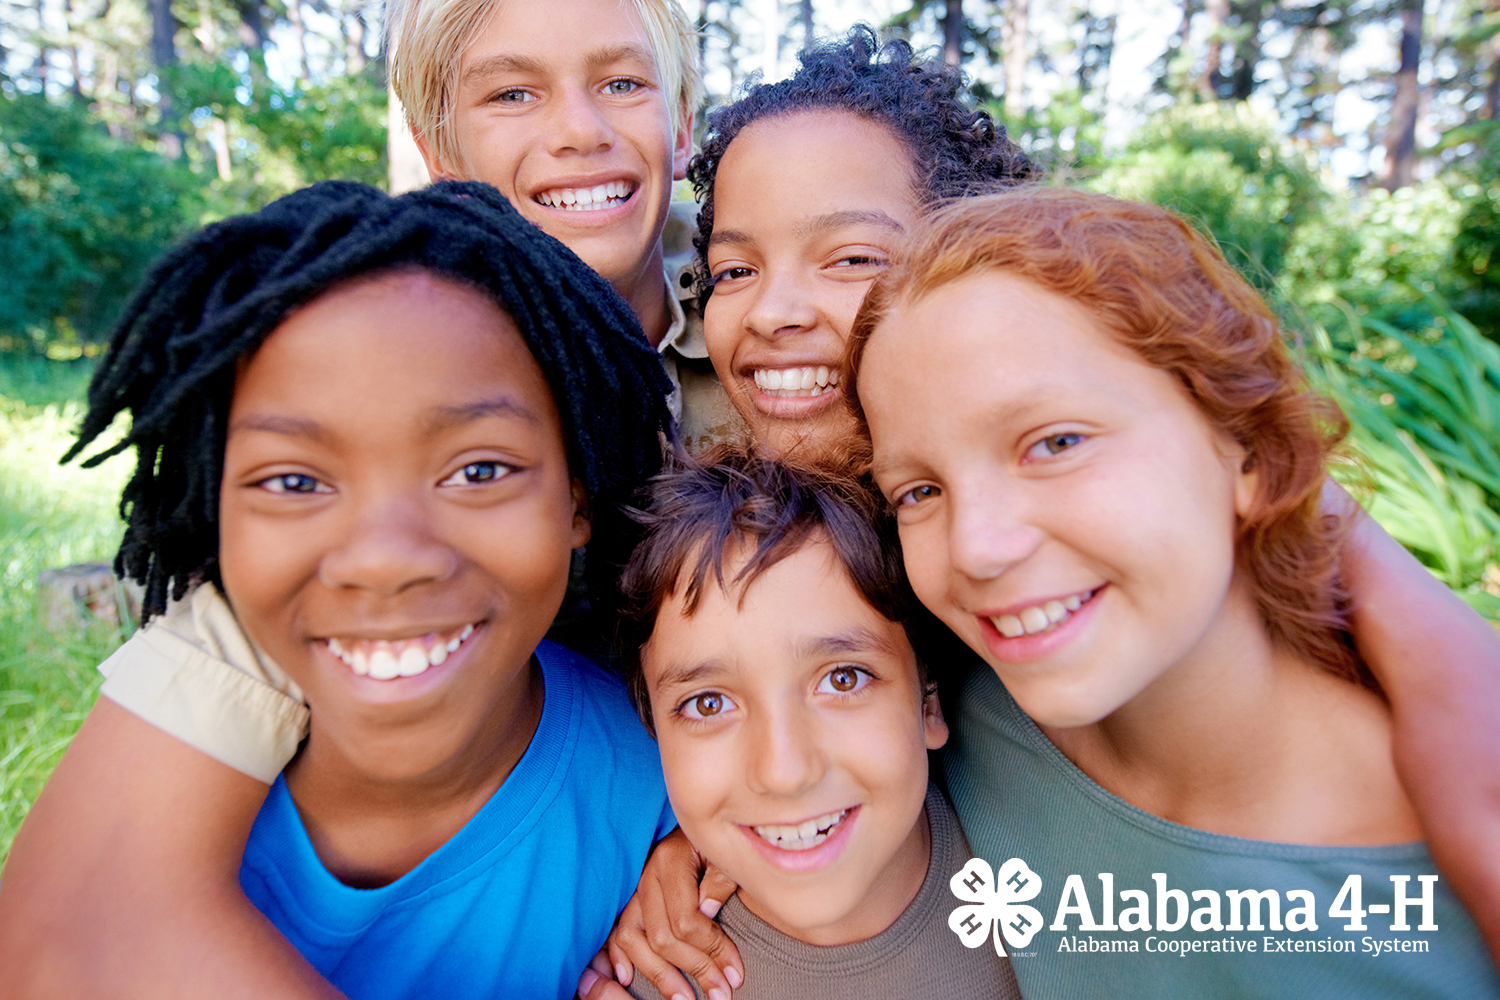 group of 4-H members together outdoors; Alabama 4-H